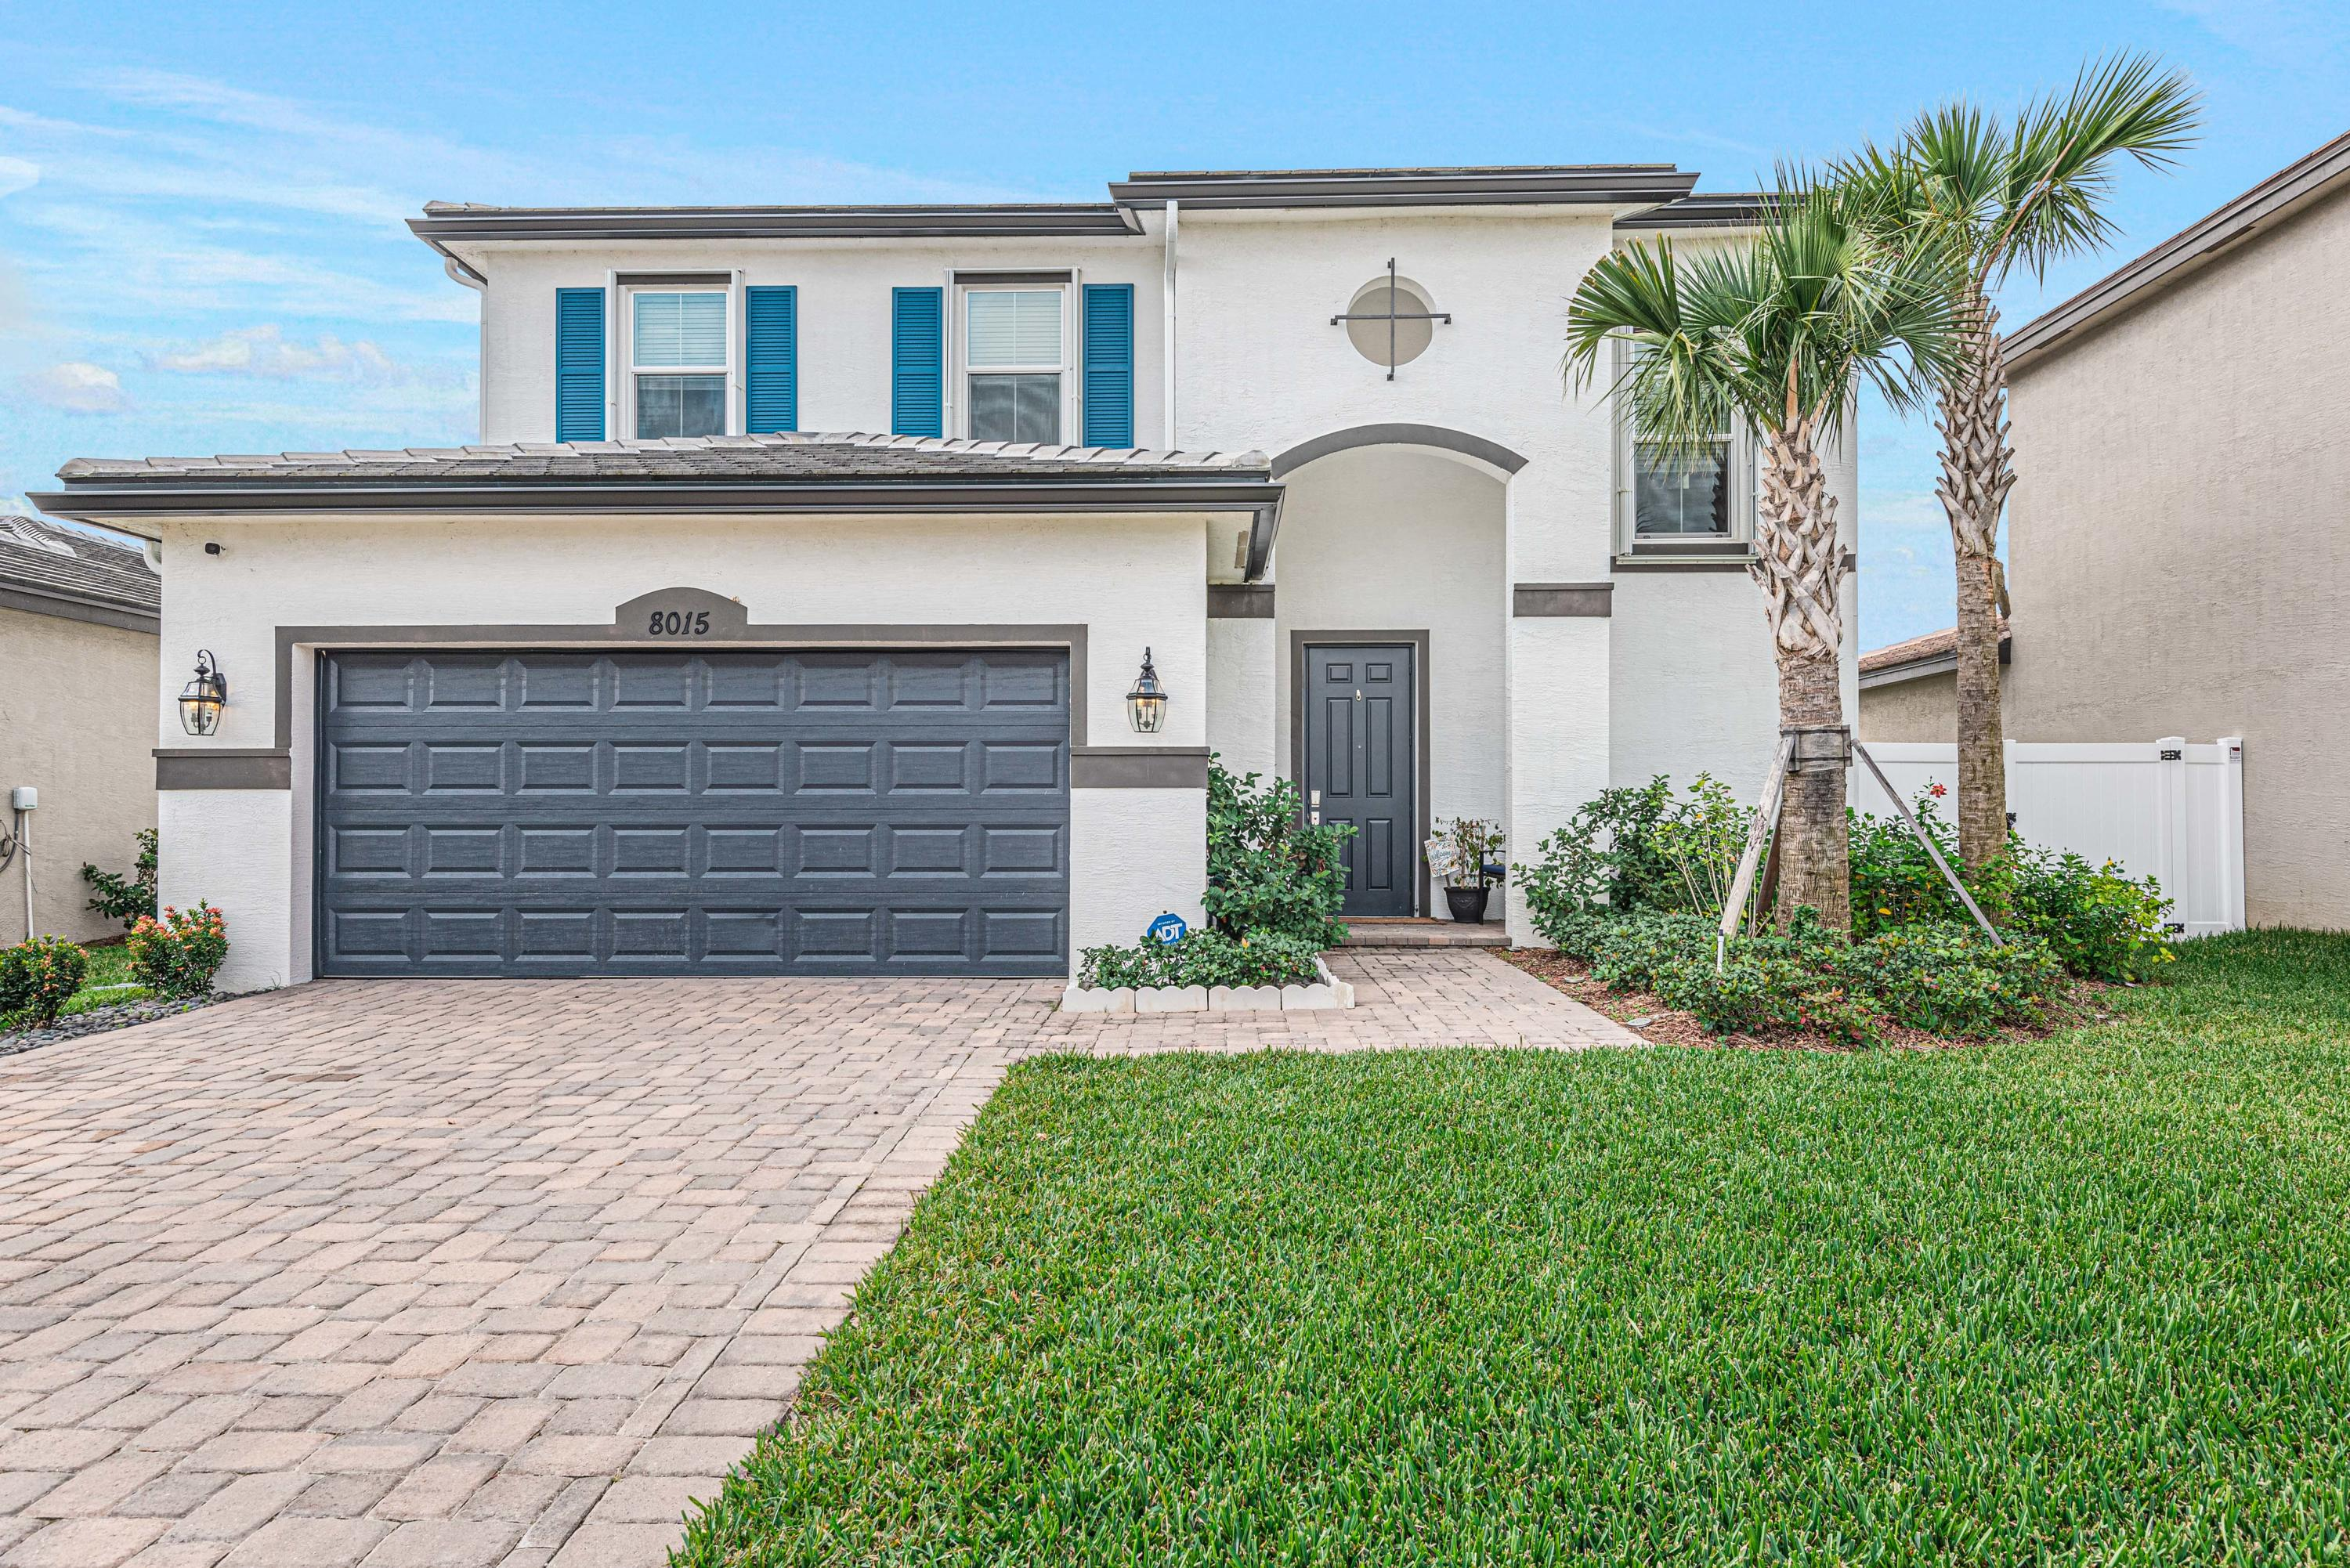 Details for 8015 Greenbank Circle Nw, Port Saint Lucie, FL 34987